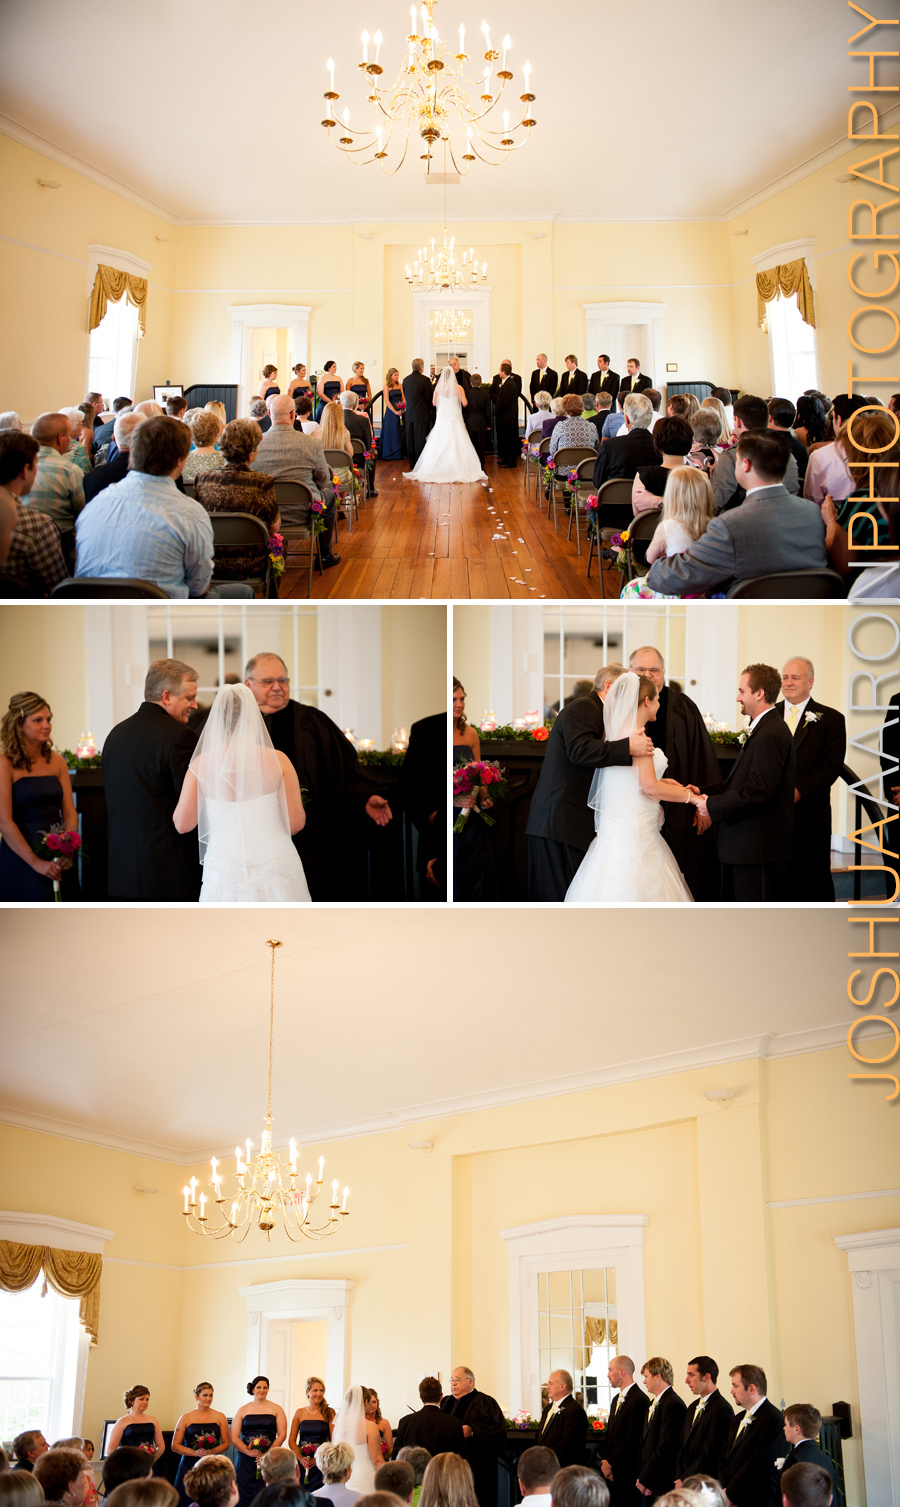 Emily and Joey wedding at Robert Mills Courthouse